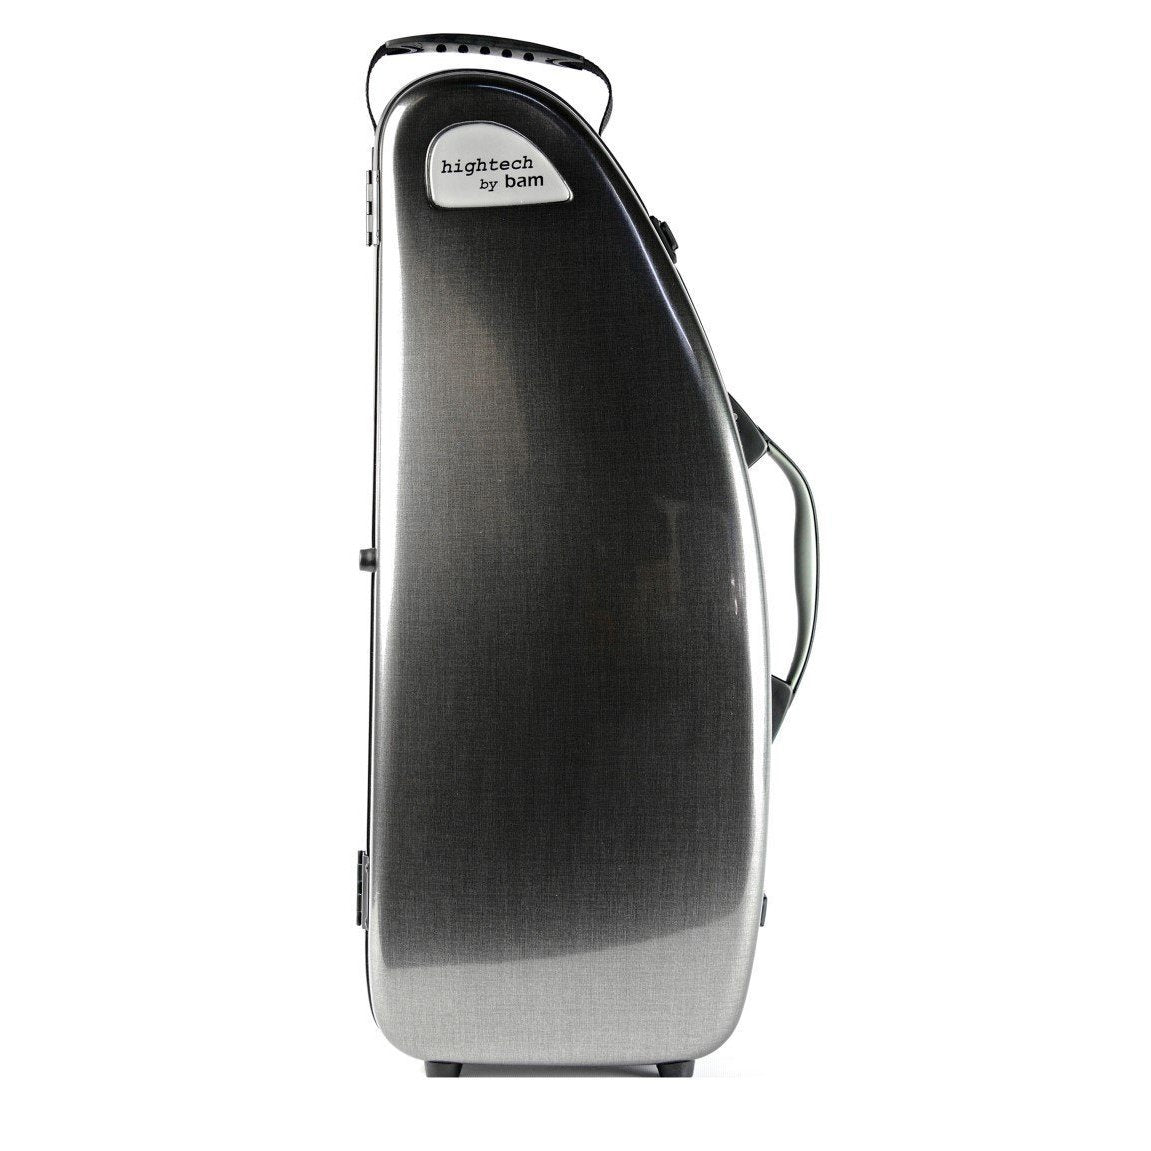 Bam - Hightech Alto Saxophone Cases (without Pocket)-Case-Bam-Tweed-Music Elements